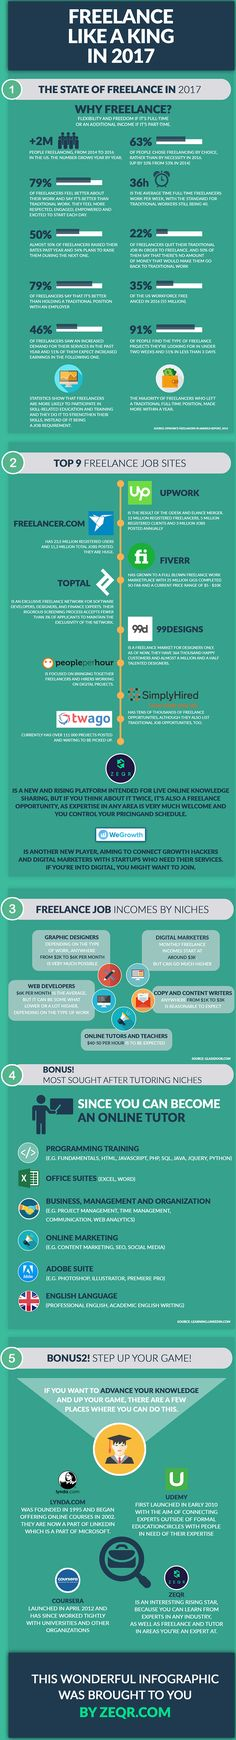 Freelance Like A King In 2017 #Infographic #Freelance